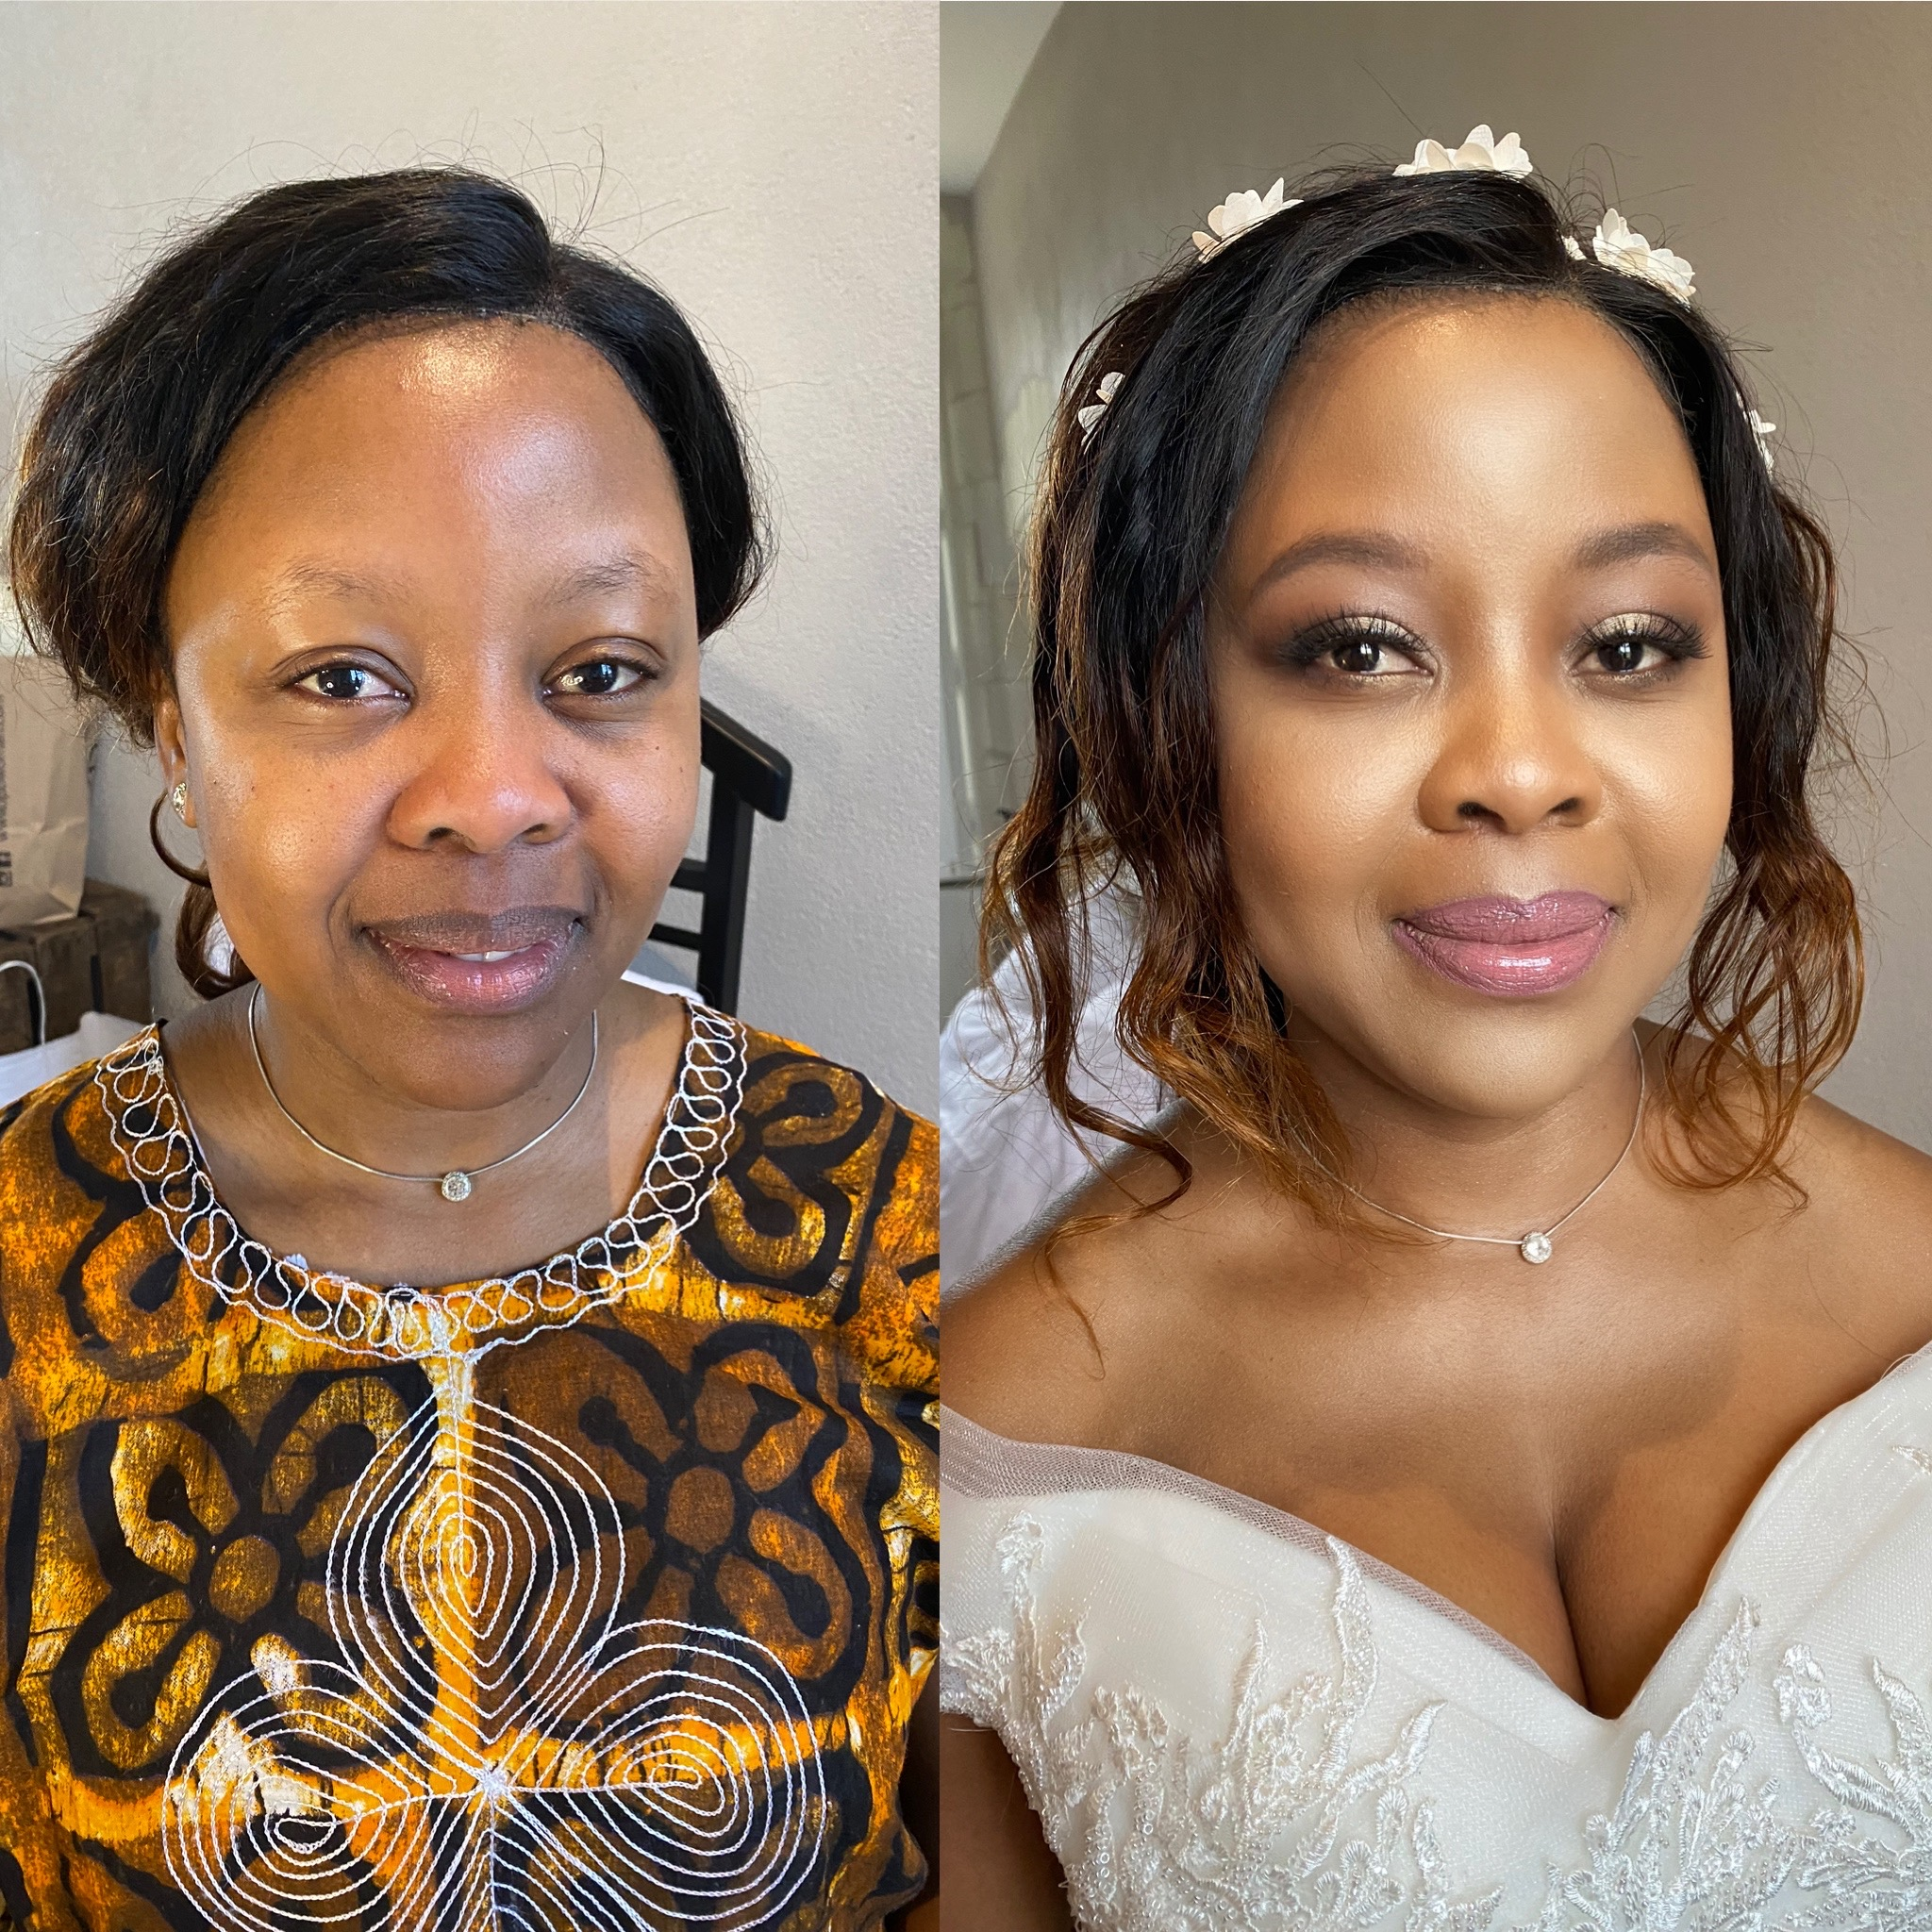 maquilleuse - mariage - nantes - makeupartist - cours maquillage